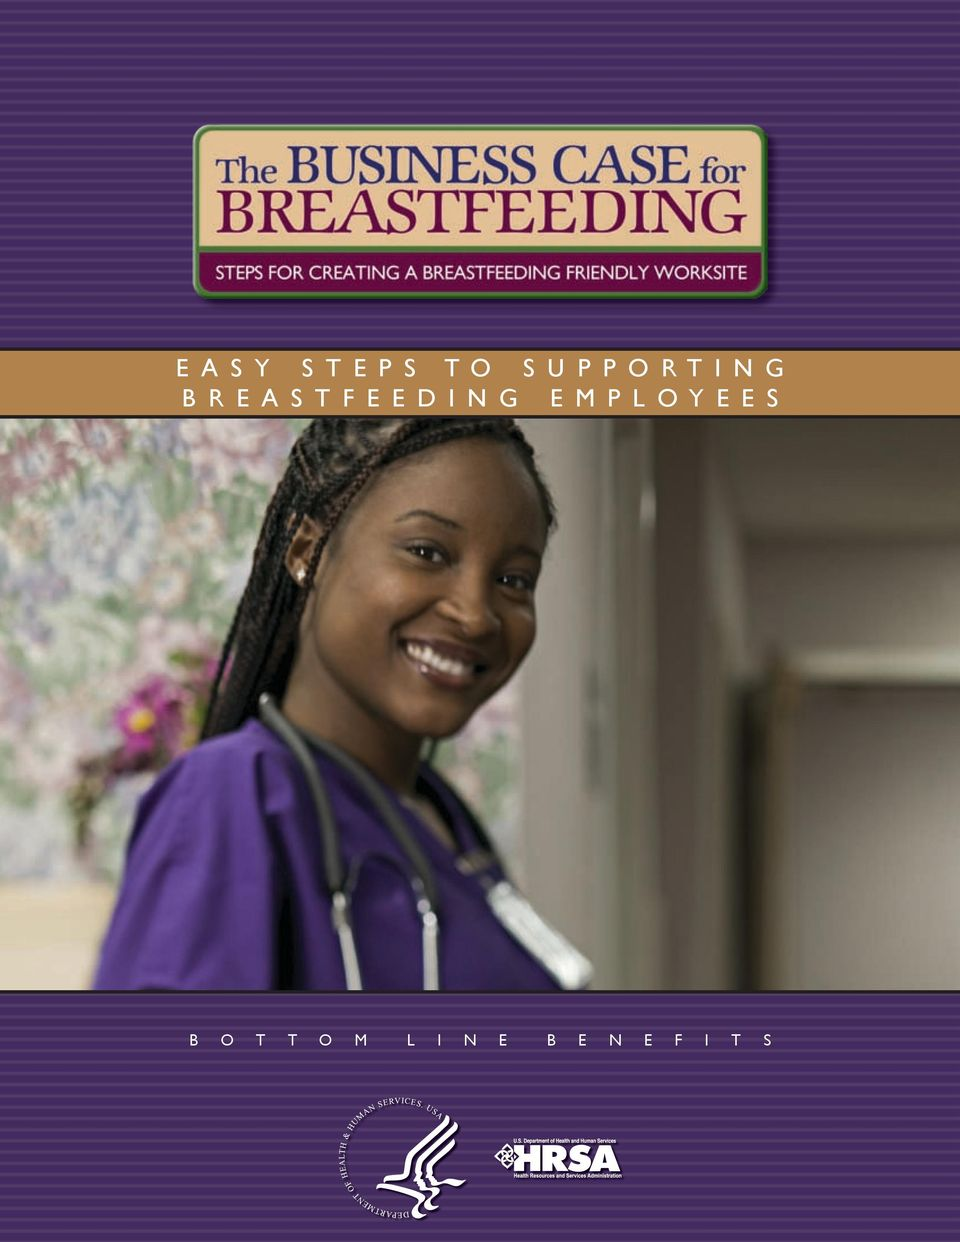 BREASTFEEDING EMPLOYEES B